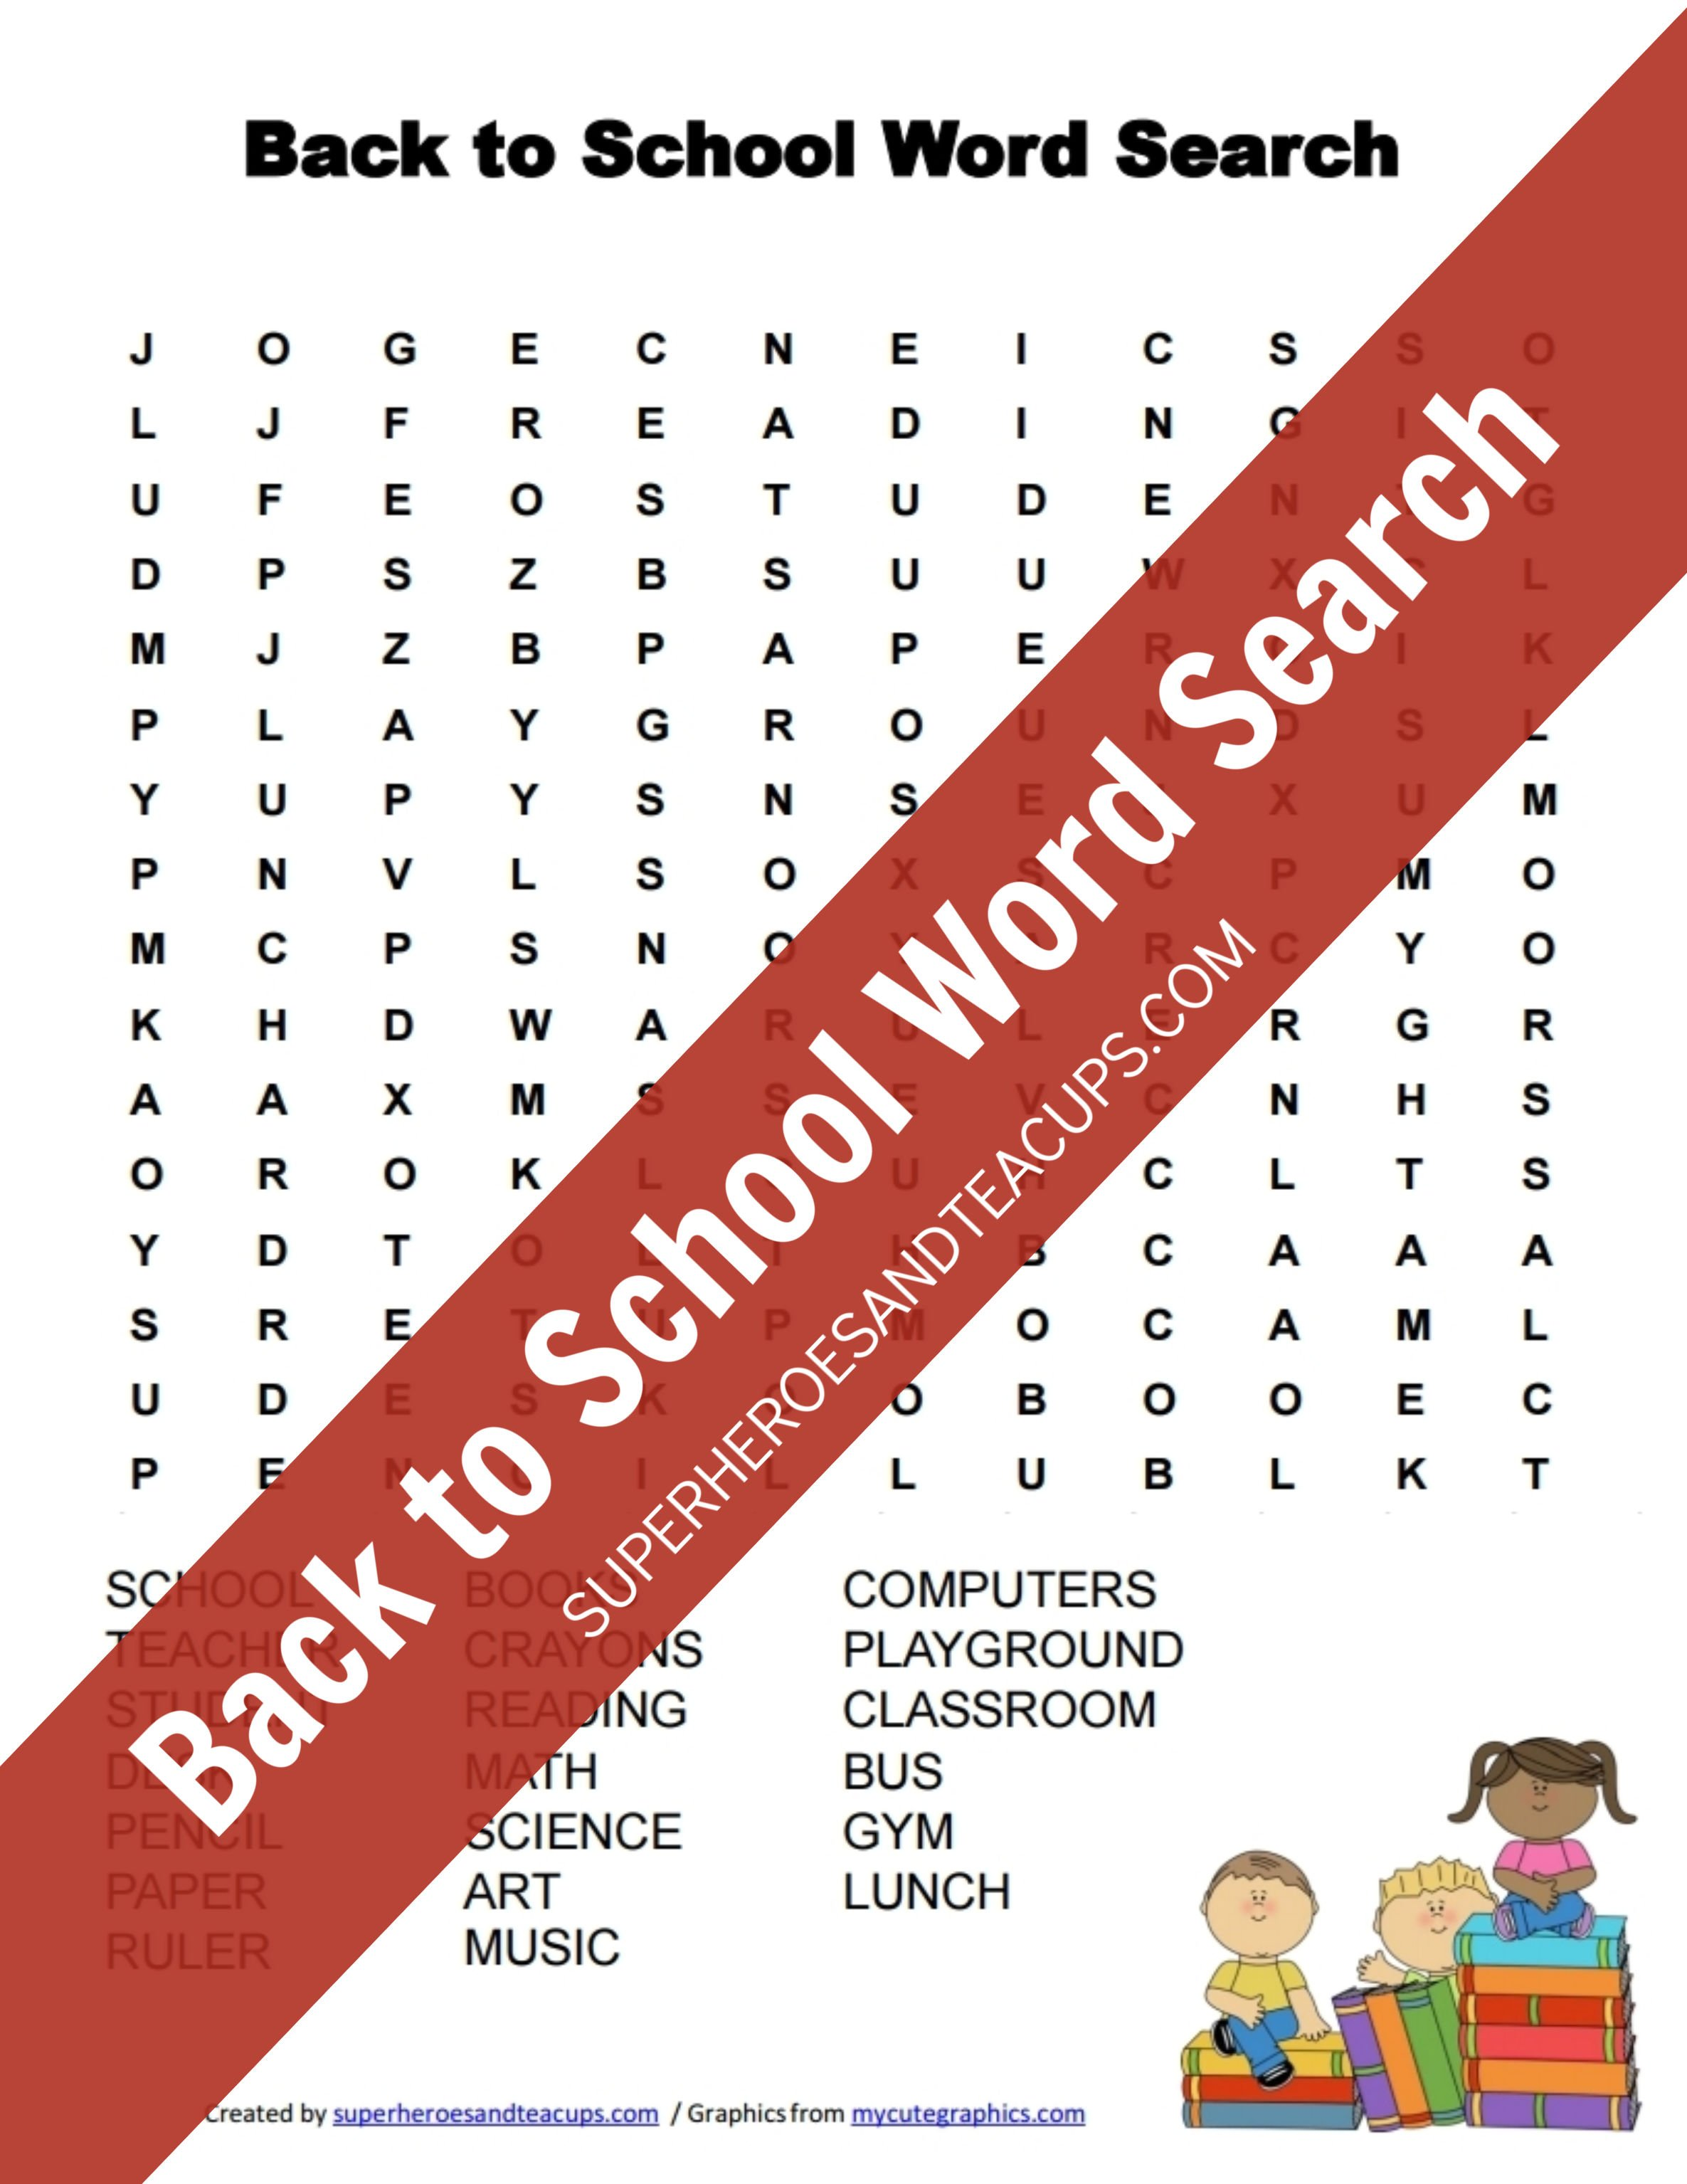 picture relating to School Word Search Printable referred to as Back again toward Higher education Phrase Seem Free of charge Printable Superheroes and